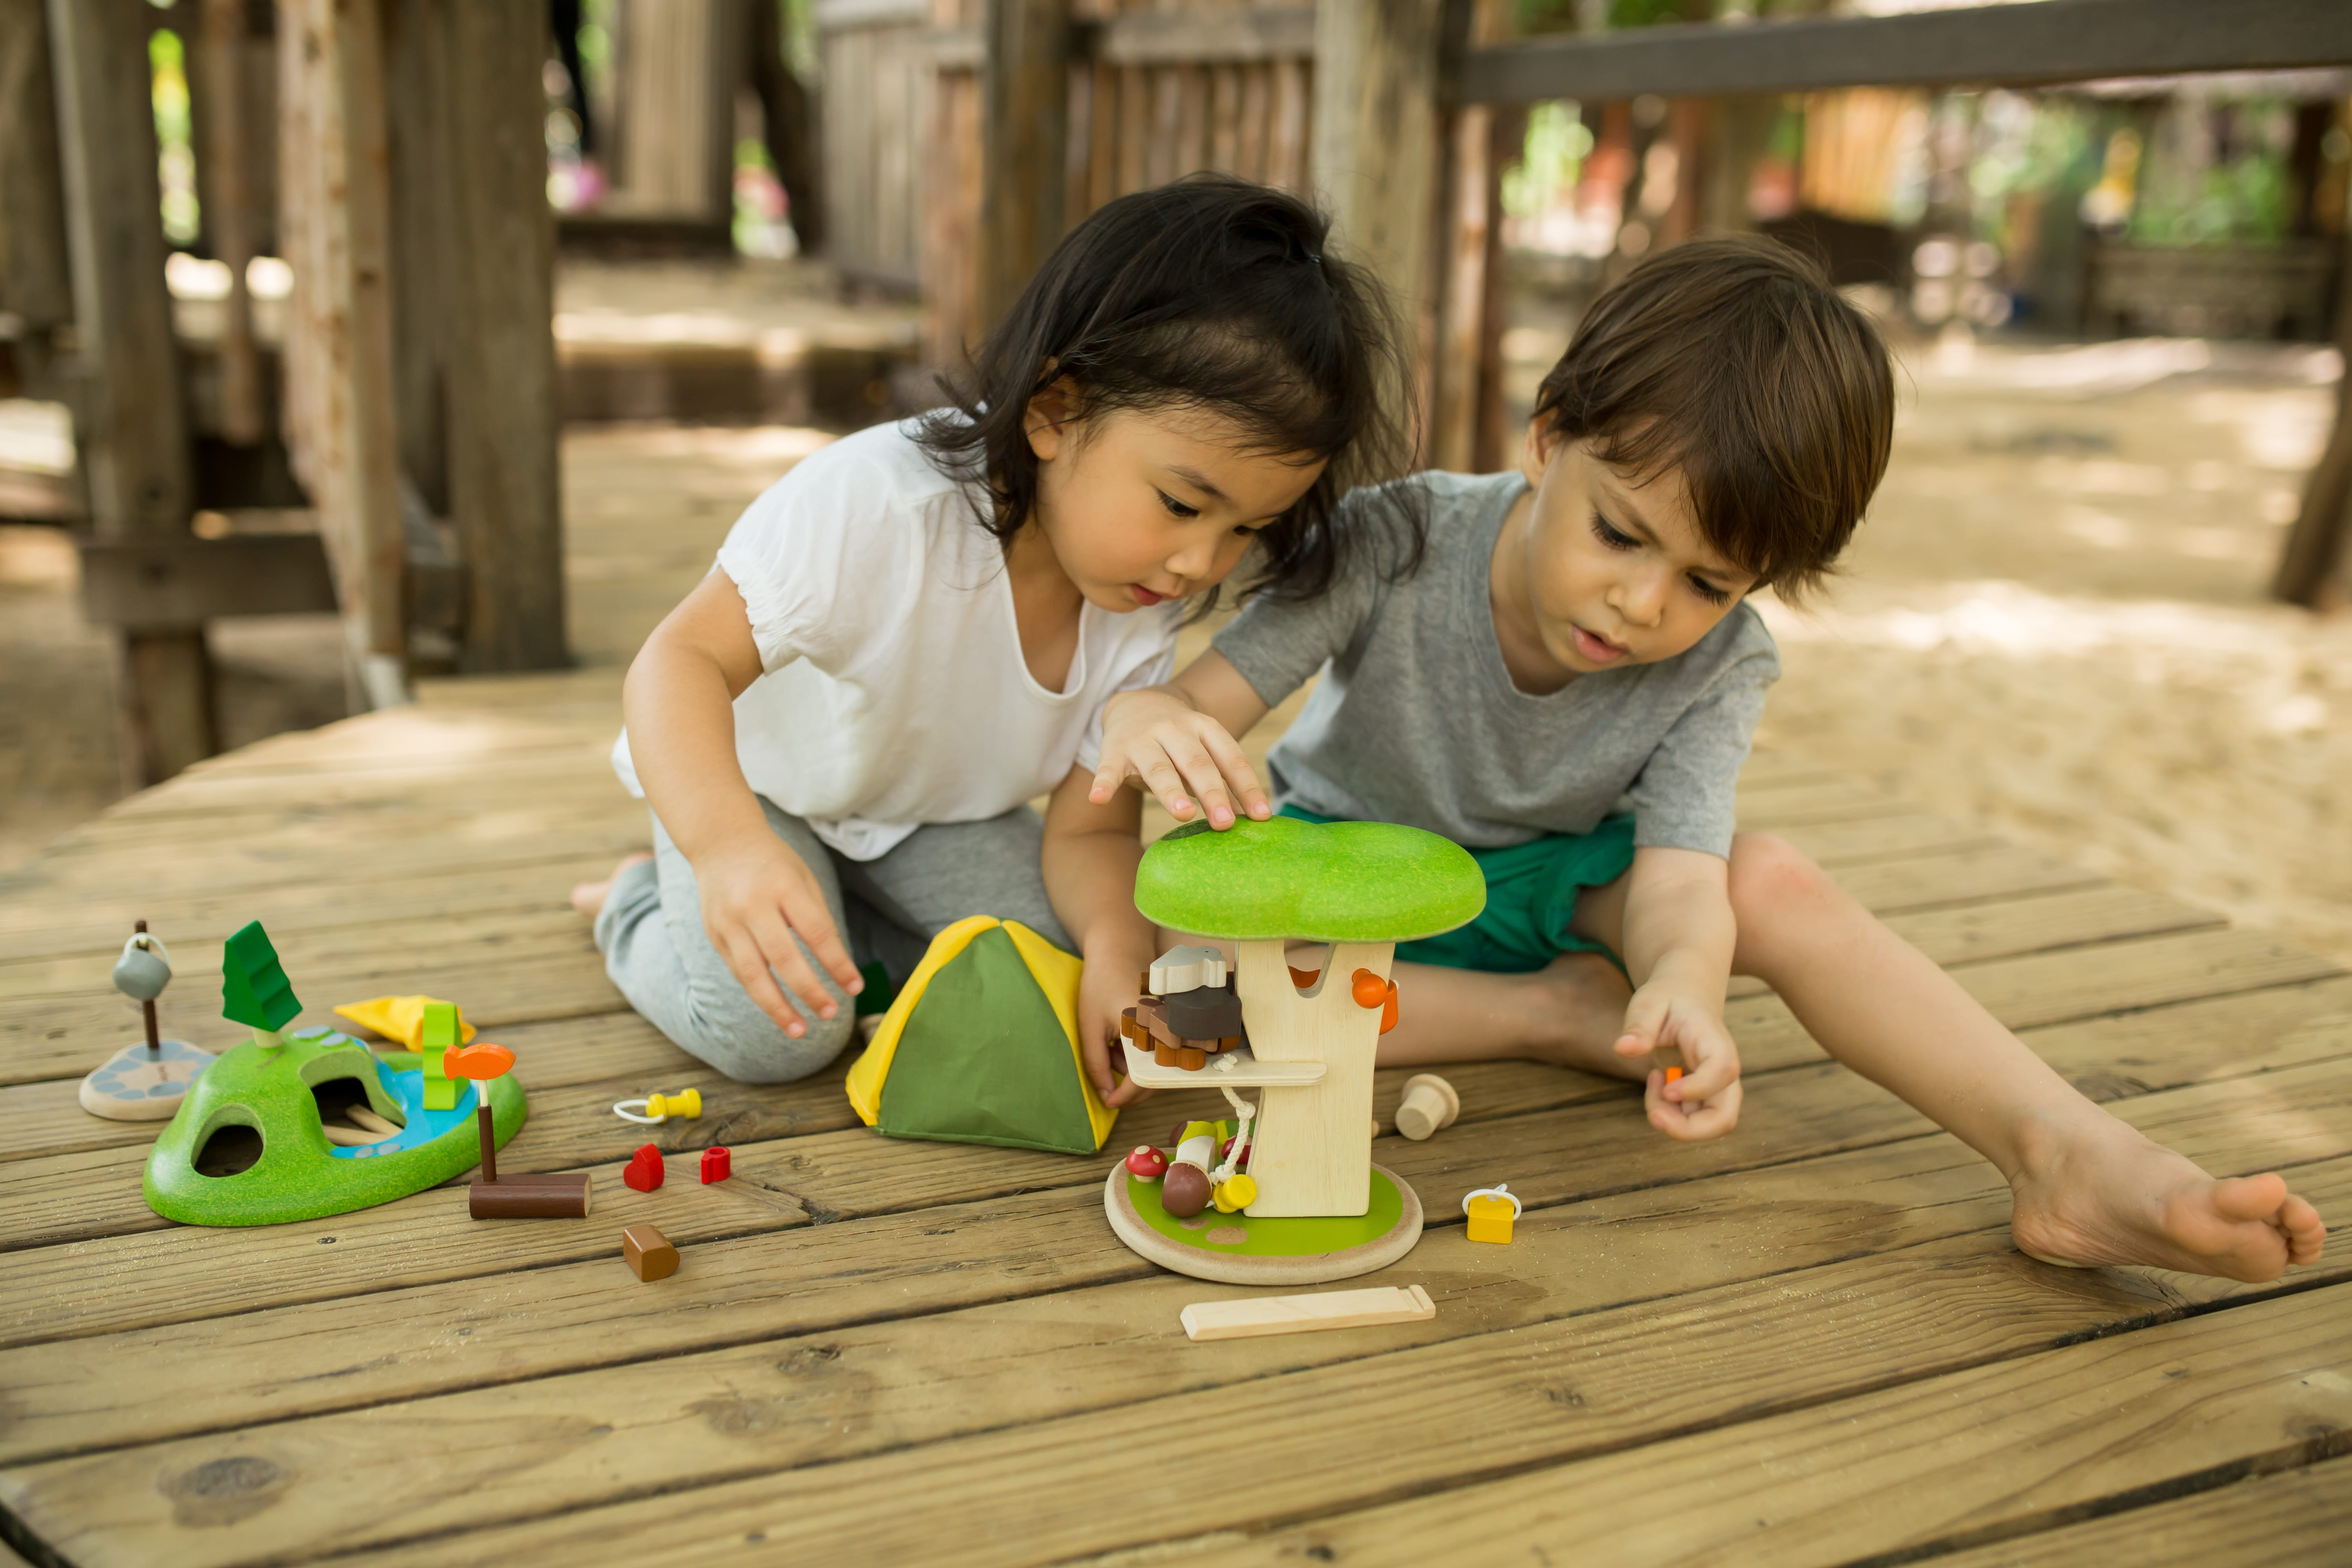 6626_PlanToys_TREE_HOUSE_Pretend_Play_Imagination_Coordination_Language_and_Communications_Social_Fine_Motor_3yrs_Wooden_toys_Education_toys_Safety_Toys_Non-toxic_4.jpg